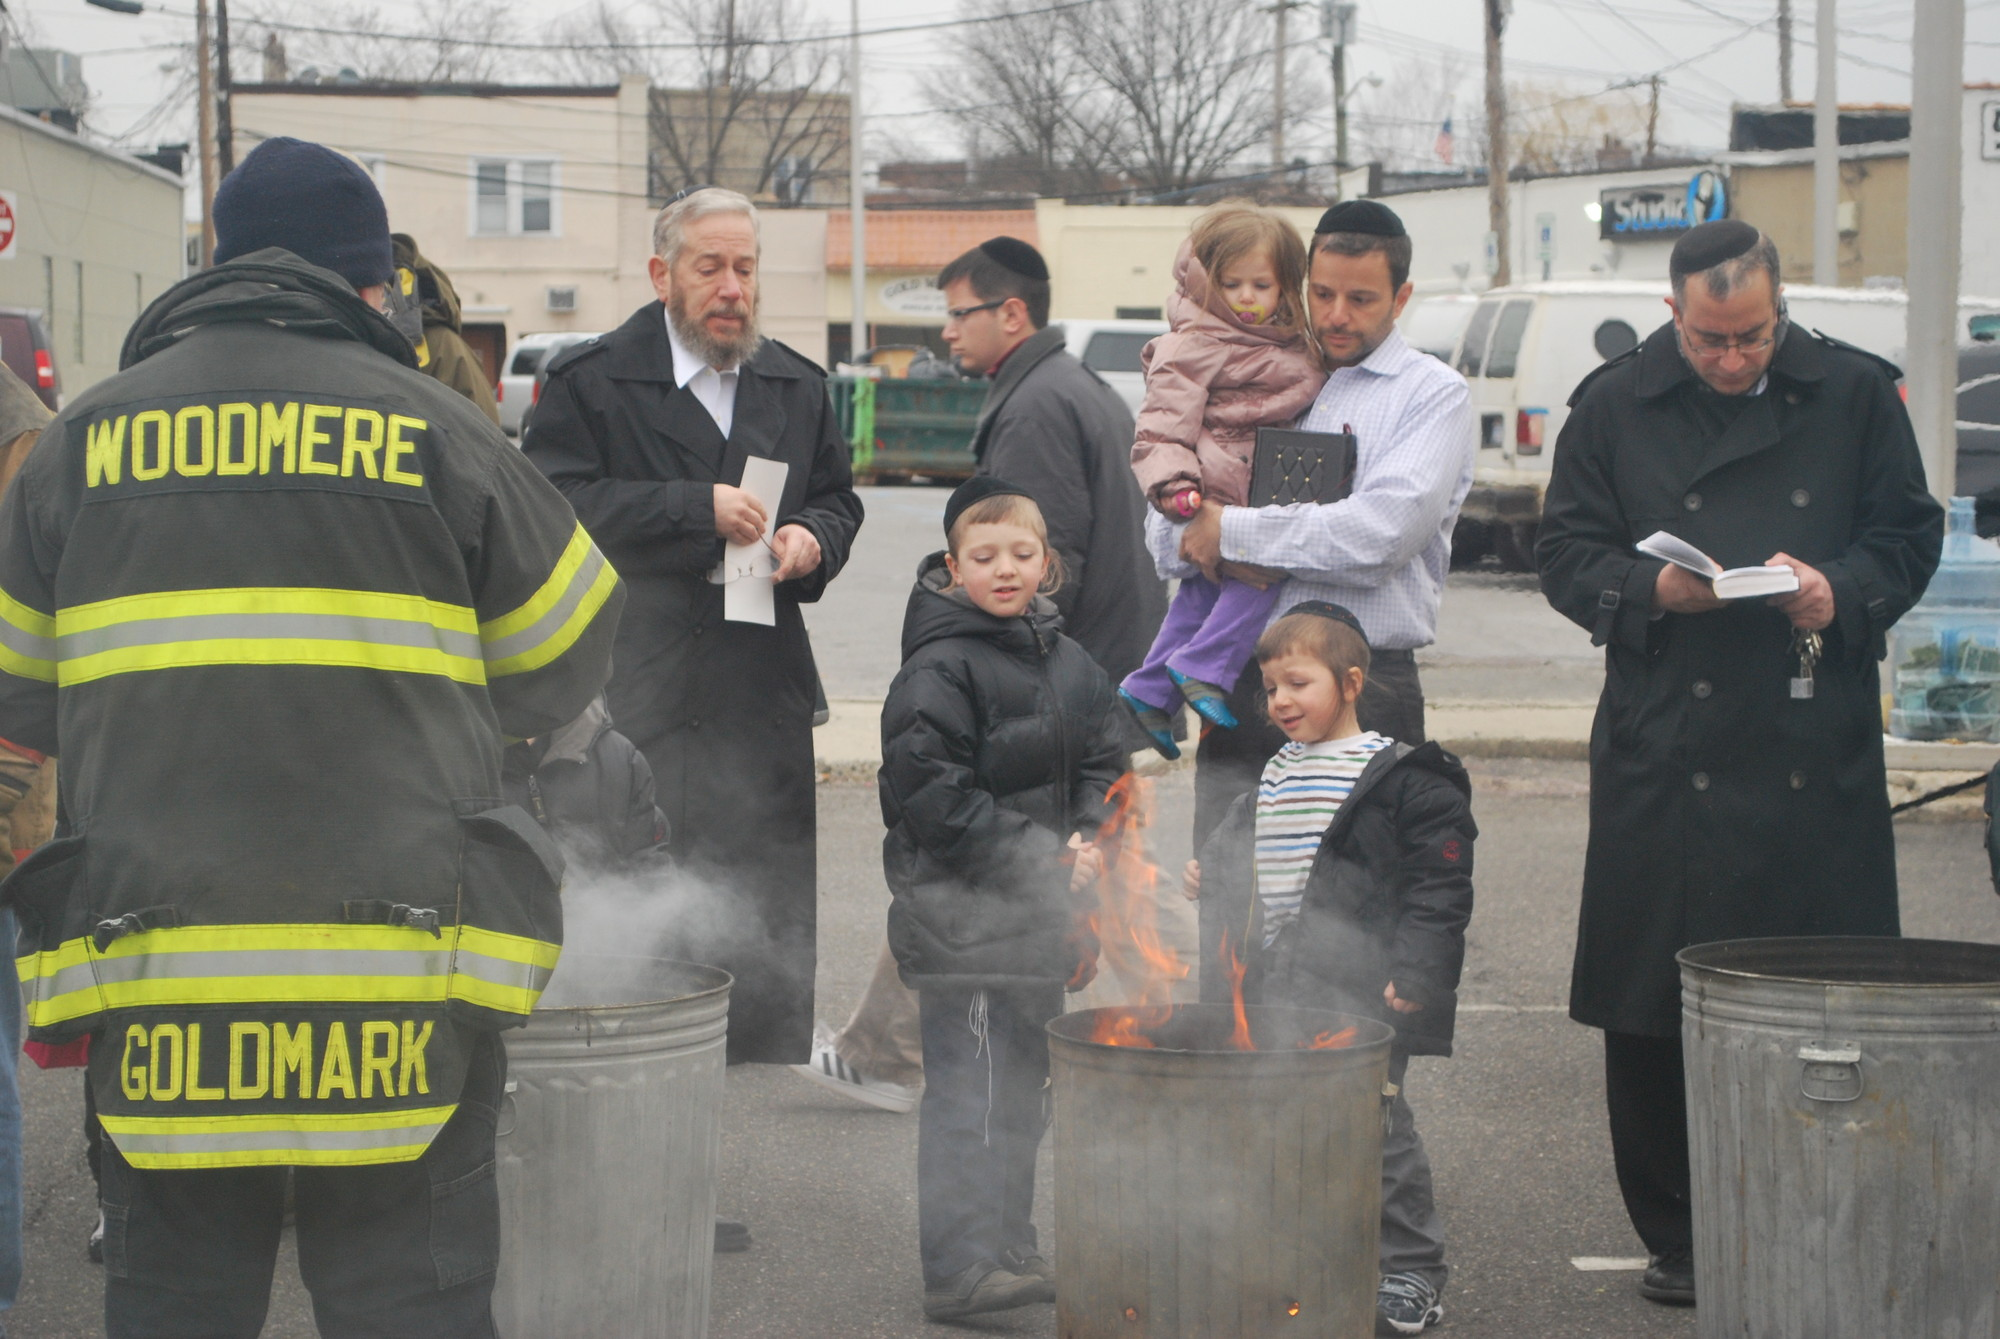 Chometz was burned and observant Jews recited the prayer that accompanies becoming chometz-free.